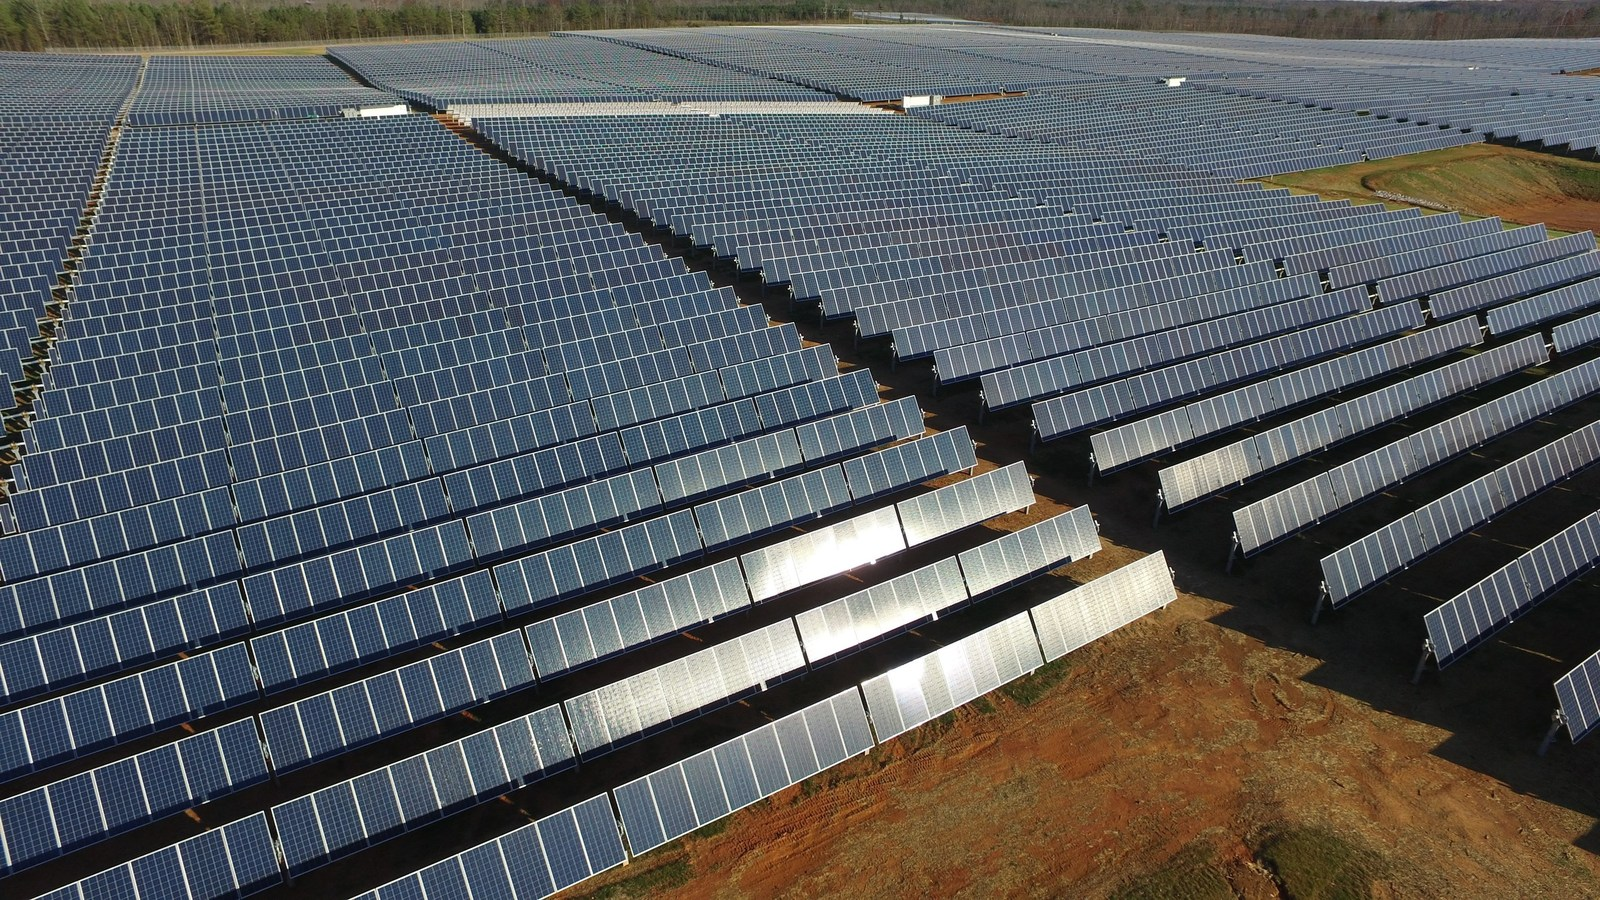 As part of this opportunity, the customers will be able to have a portion of their energy needs covered by community-based solar facilities fed directly into the Dominion Energy grid. Image: Dominion Energy